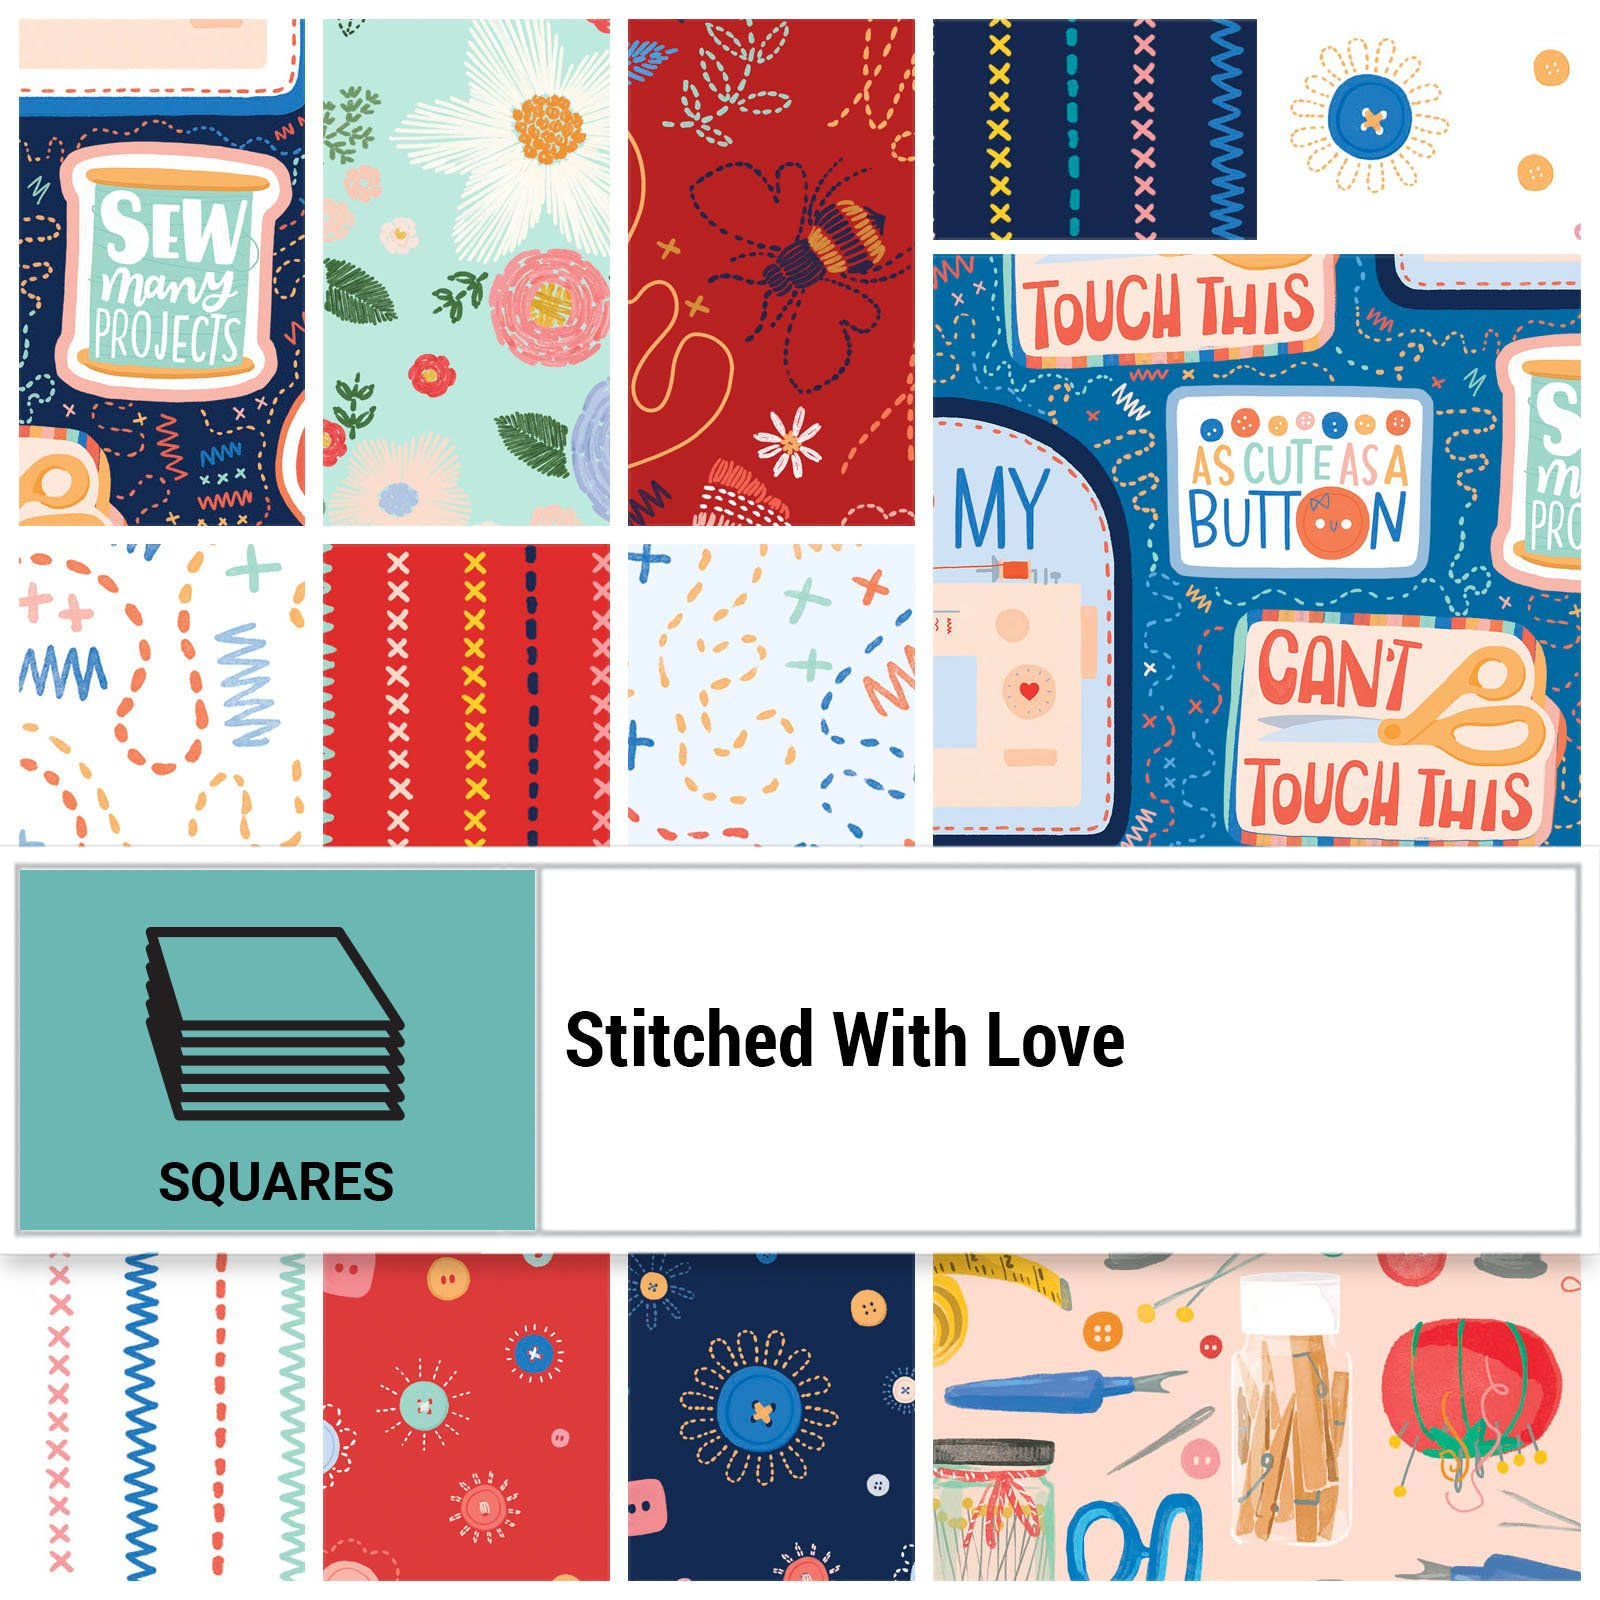 SWLO-10X10 - STITCHED WITH LOVE 10 x 10 SQUARES 42PCS - ARRIVING IN MARCH 2022